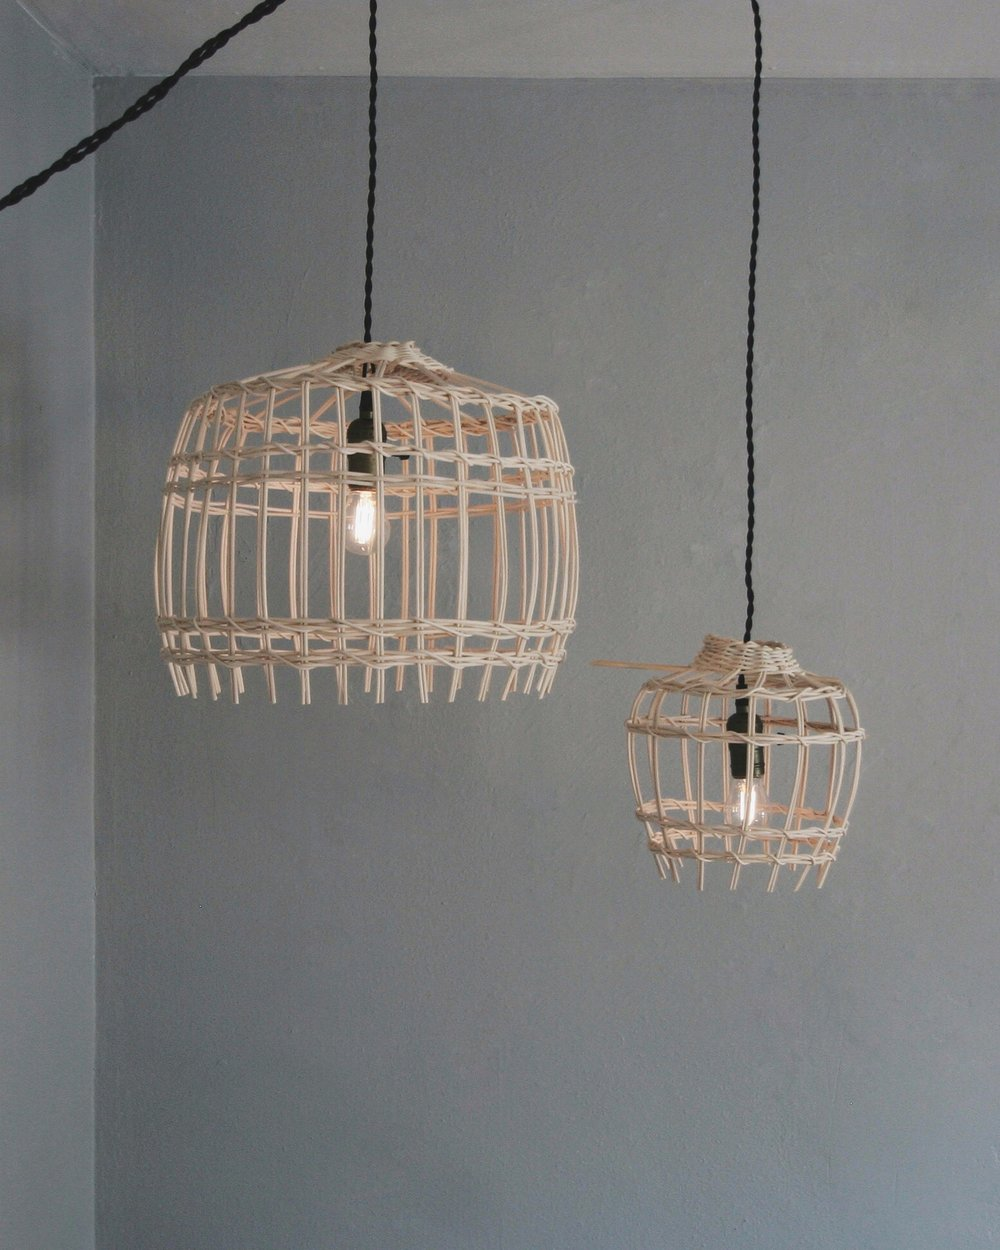 Basket Pendants created by yours truly!